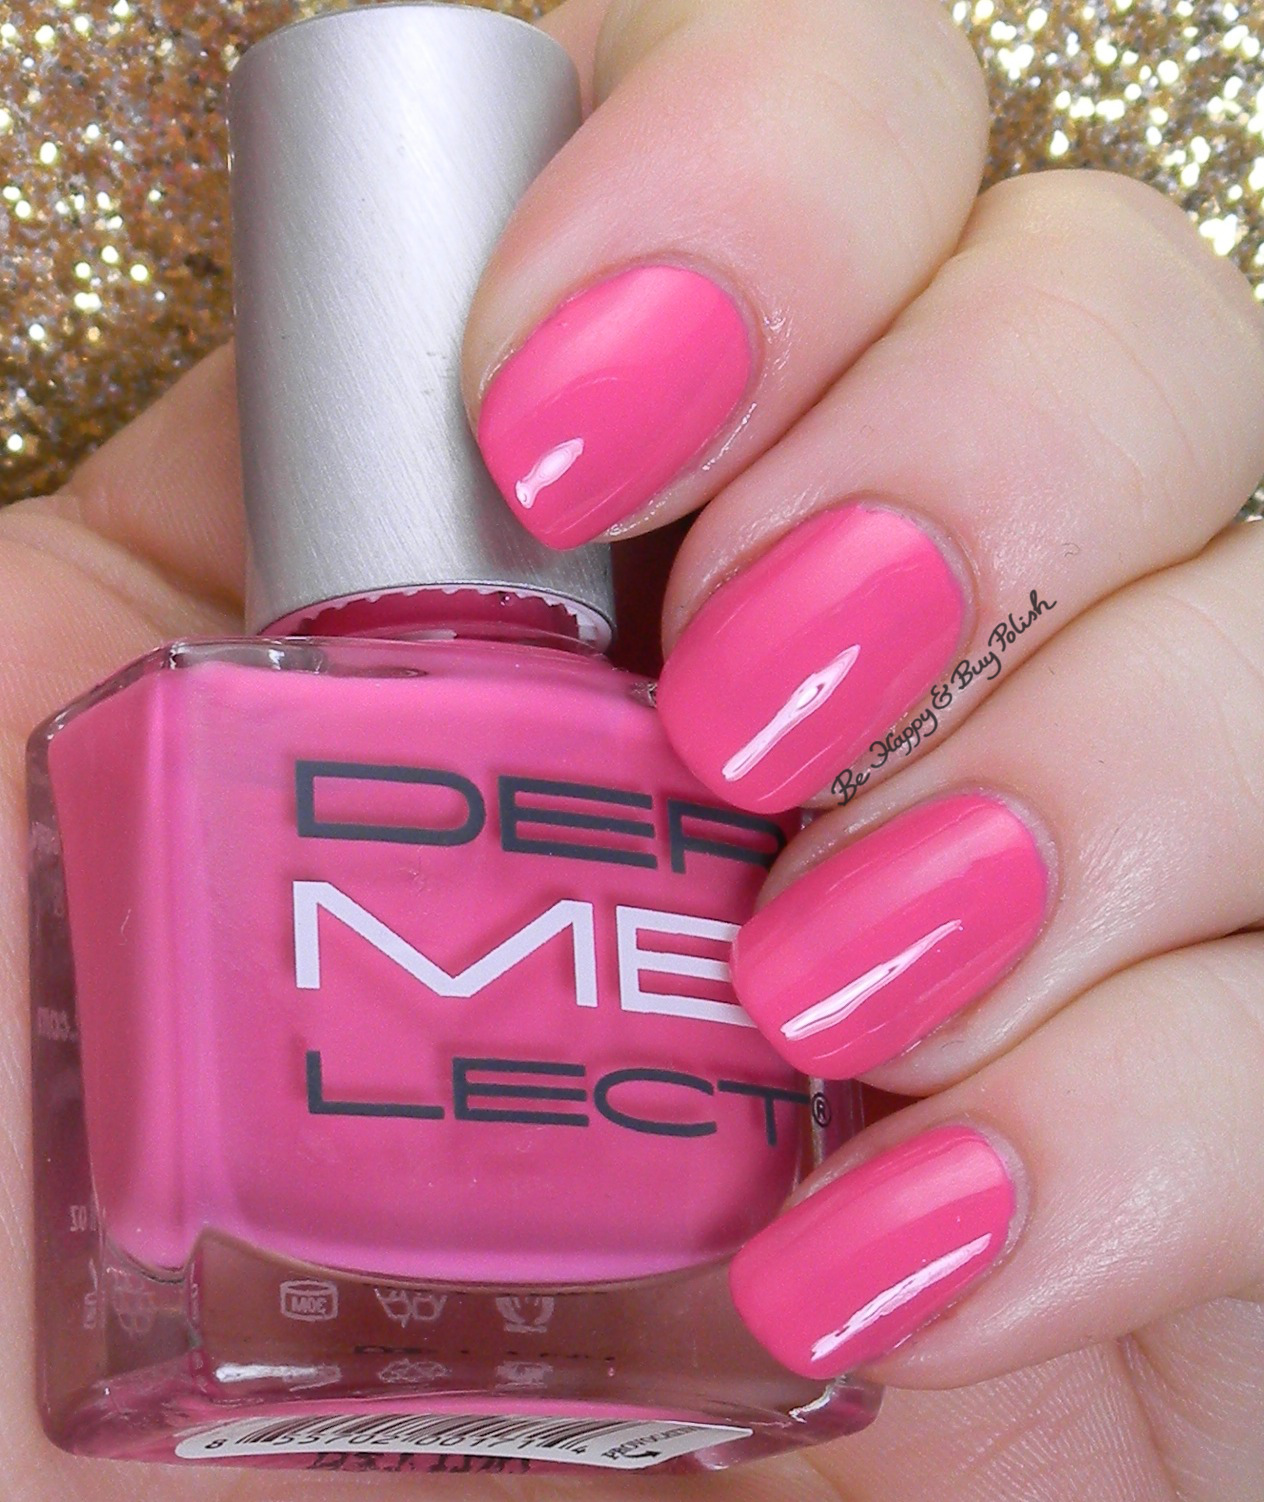 Dermelect Nail Polish Swatches + Review | Be Happy and Buy Polish